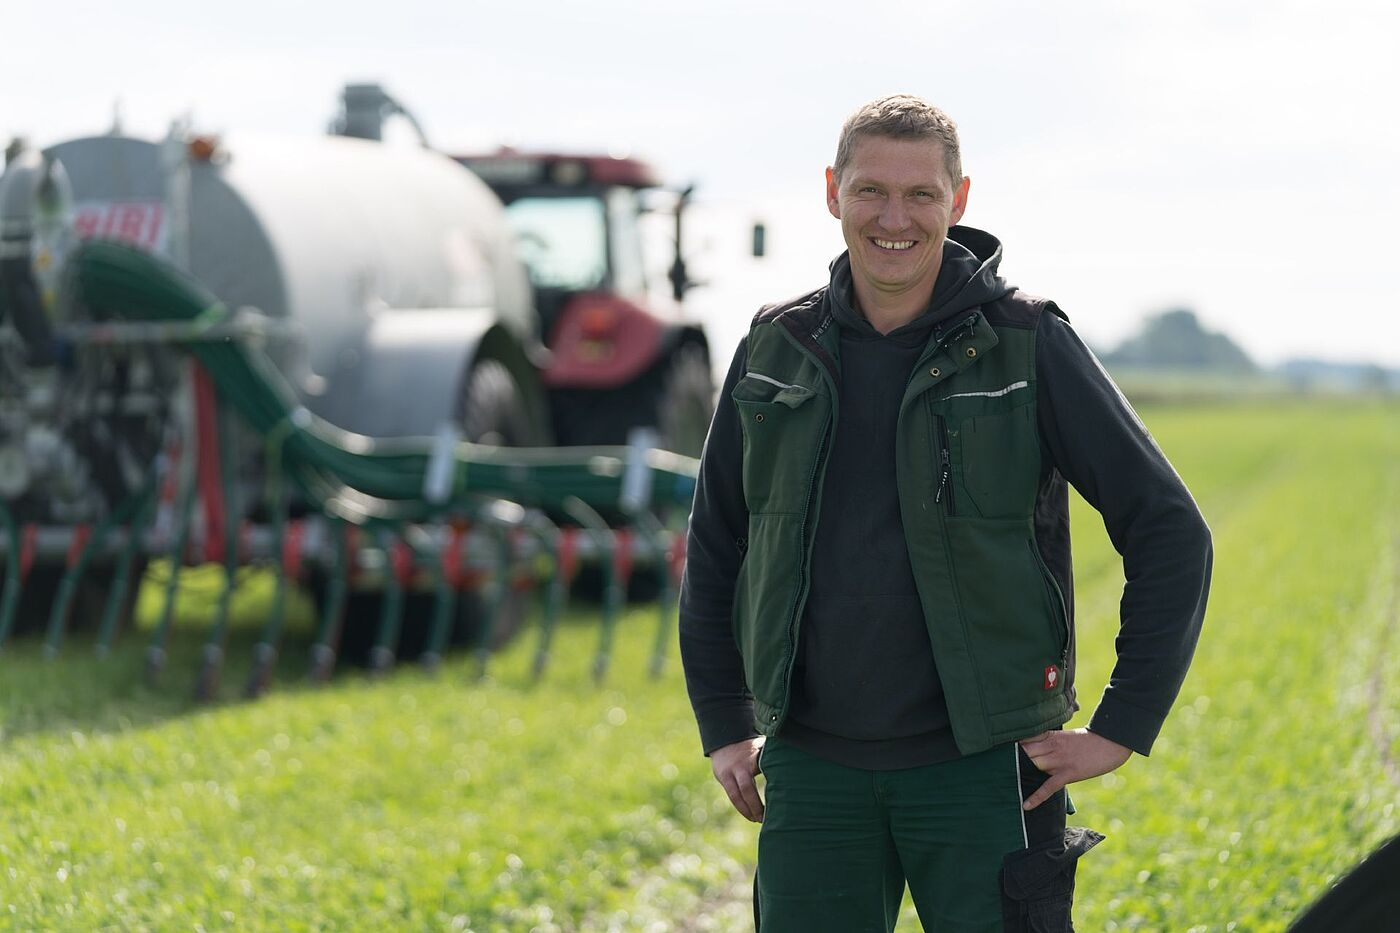 Jan Haase, Operating Manager of the Haase farm, Germany